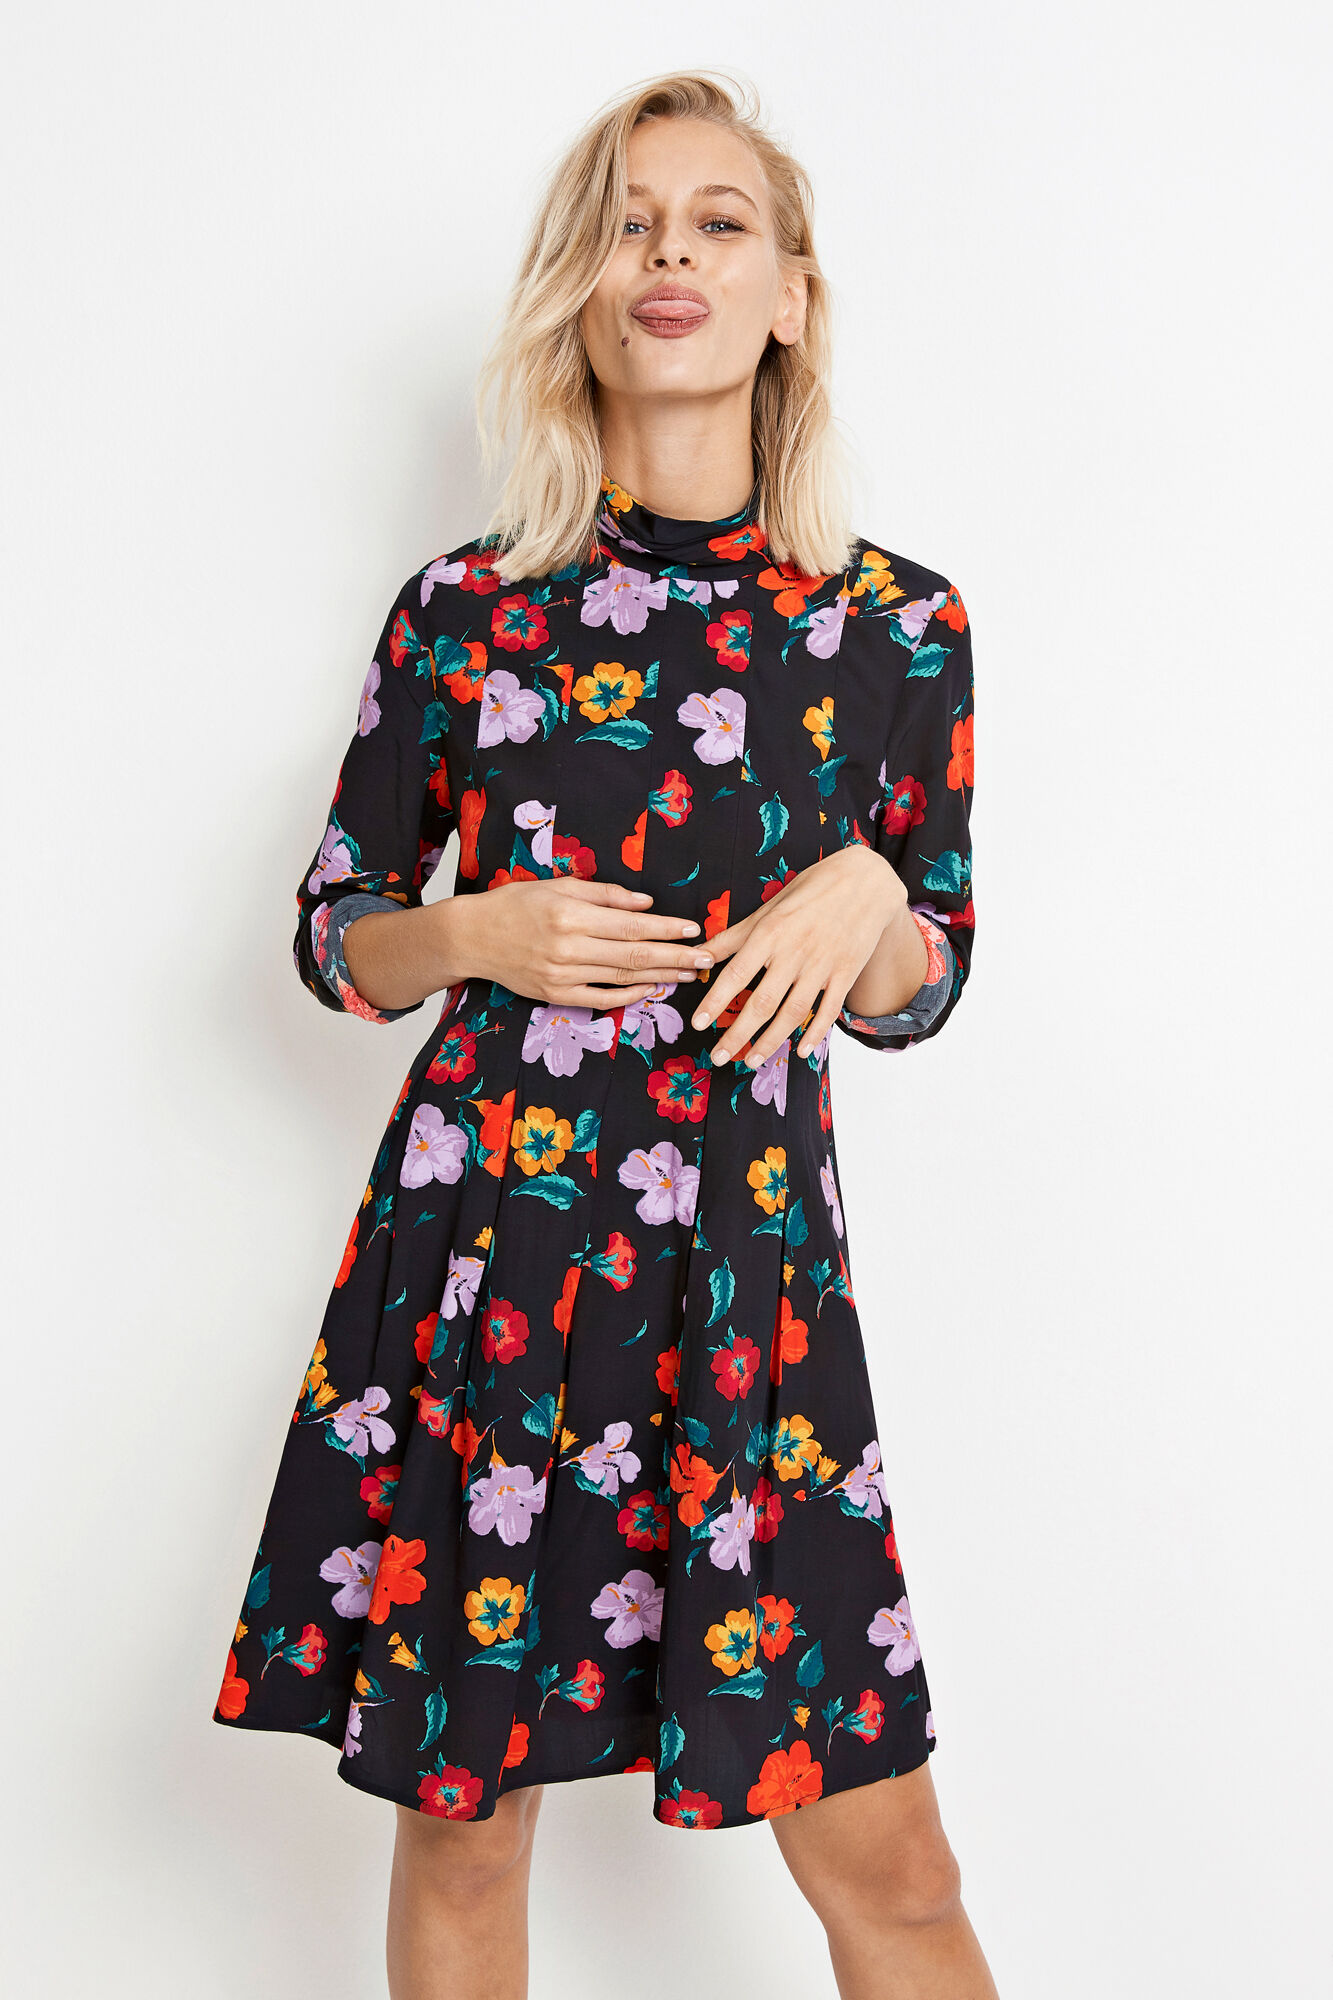 ENPOLAR LS DRESS AOP 6486, FLOWER FIELD AOP